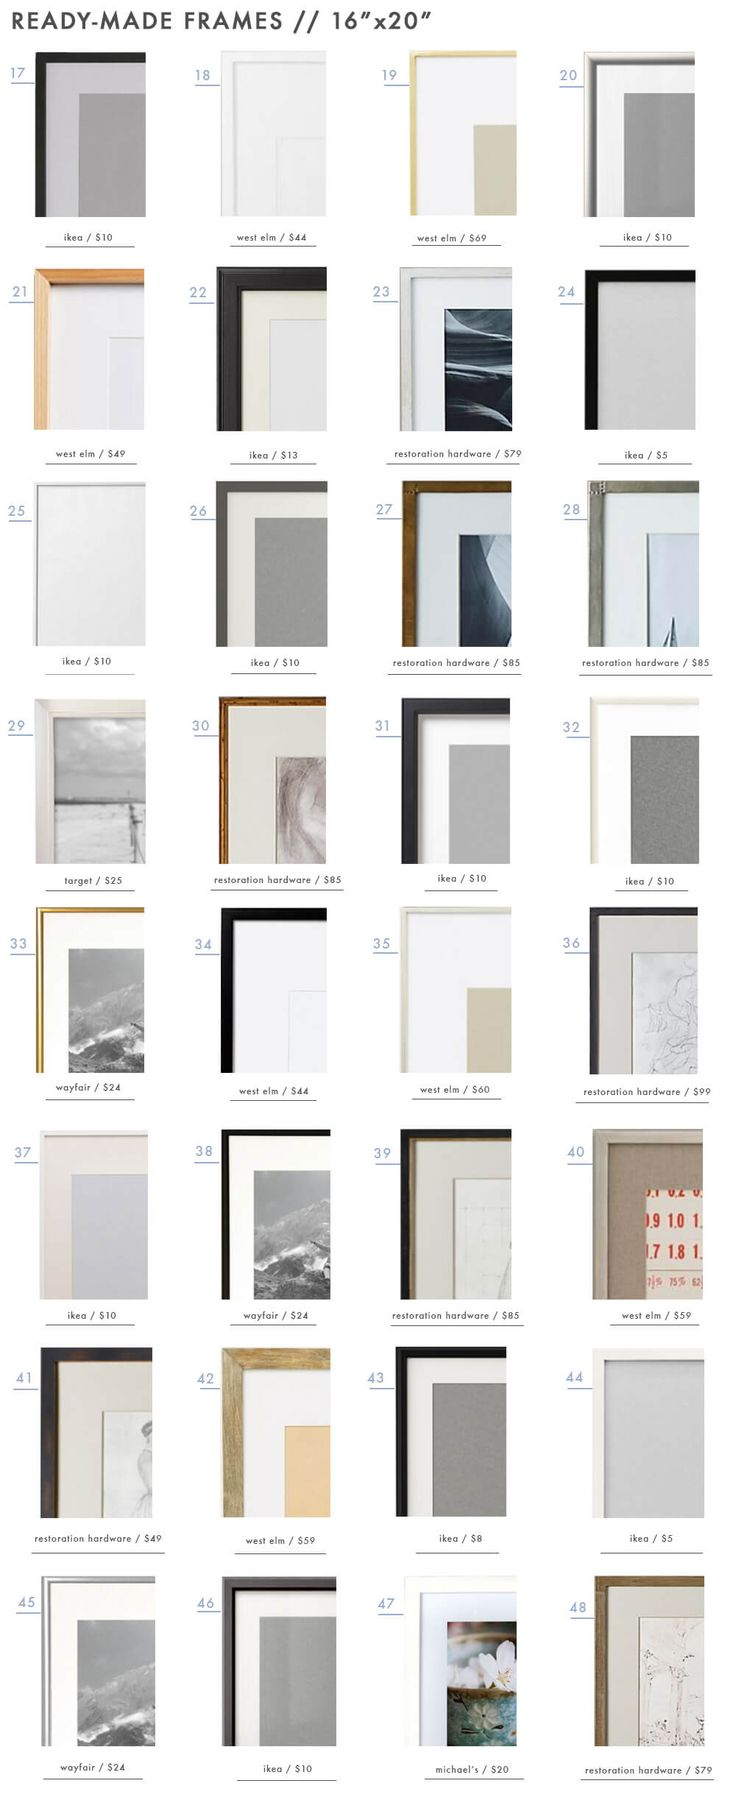 """128 Ready-Made Frames to Get You 'Gallery Wall Ready' - 16""""x20"""" Frames"""